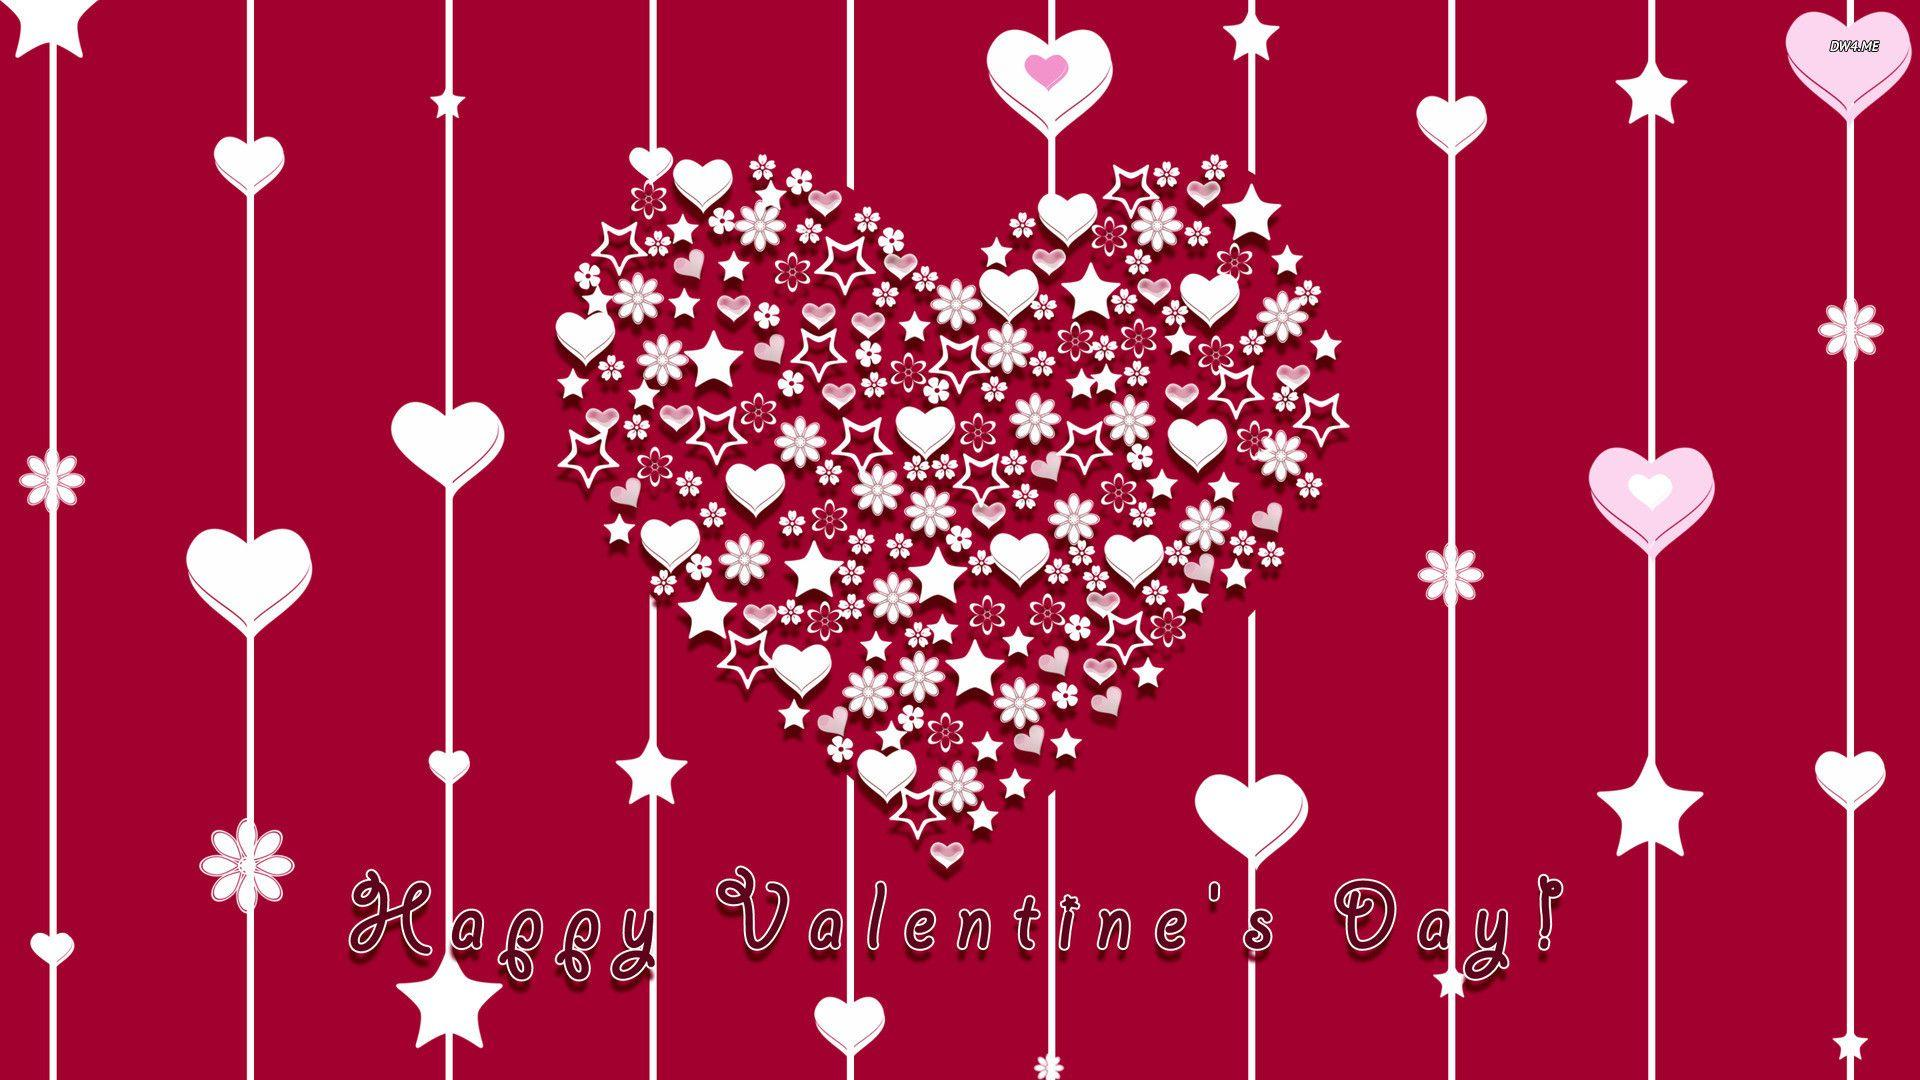 Happy Valentines Day Backgrounds - Wallpaper Cave